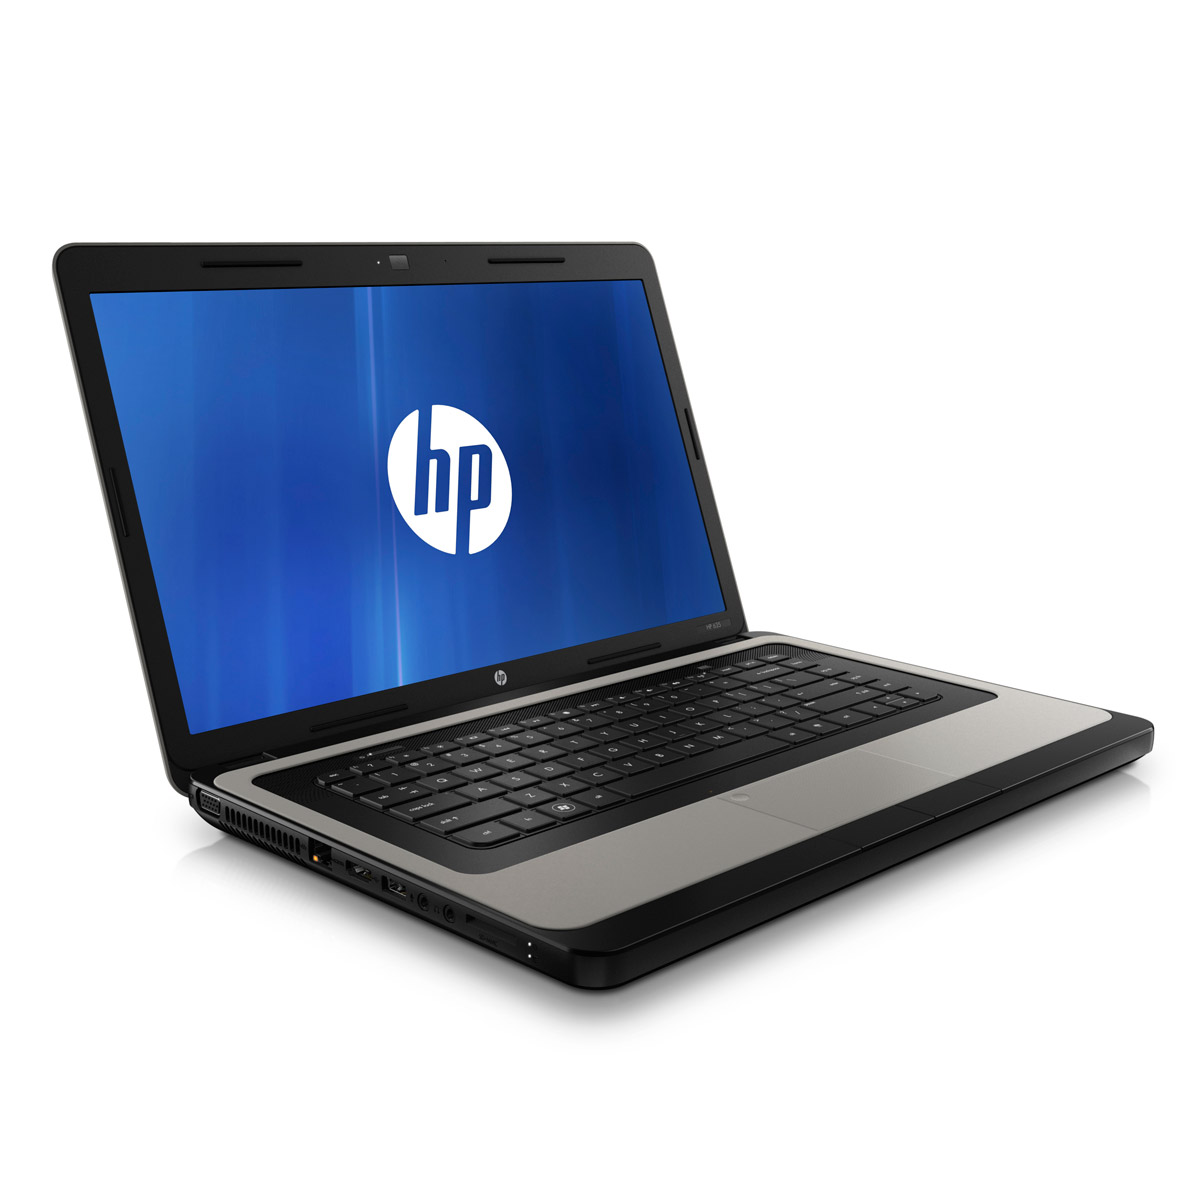 "PC portable HP 635 (A1E55EA) AMD Double-Coeur E450 4 Go 500 Go 15.6"" LED Graveur DVD Wi-Fi N/Bluetooth Webcam Windows 7 Premium 64 bits"